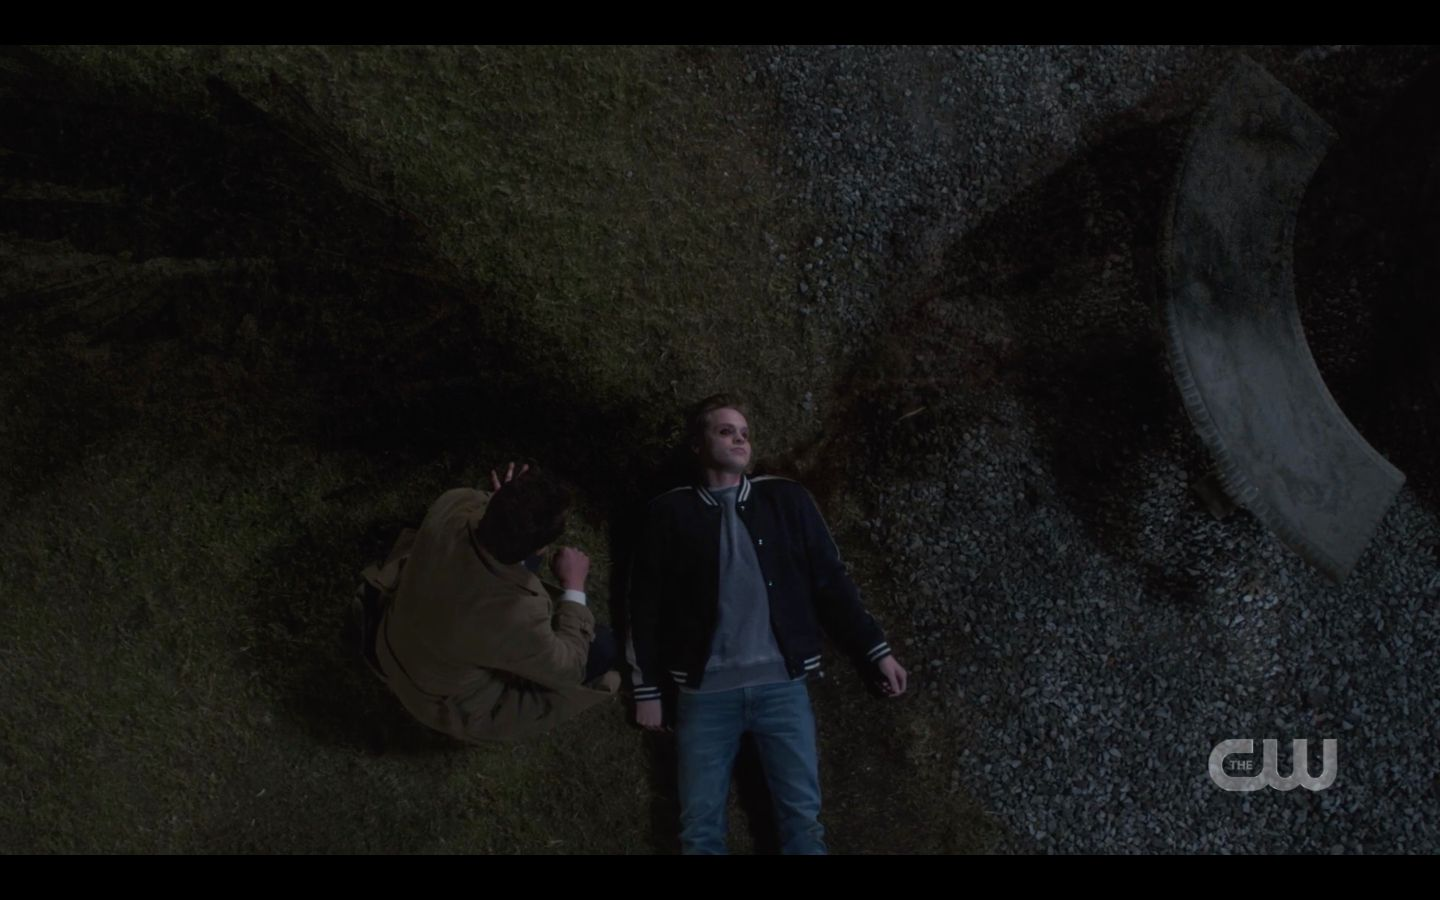 Sam Dean Winchester find Jack is dead SPN 14.20